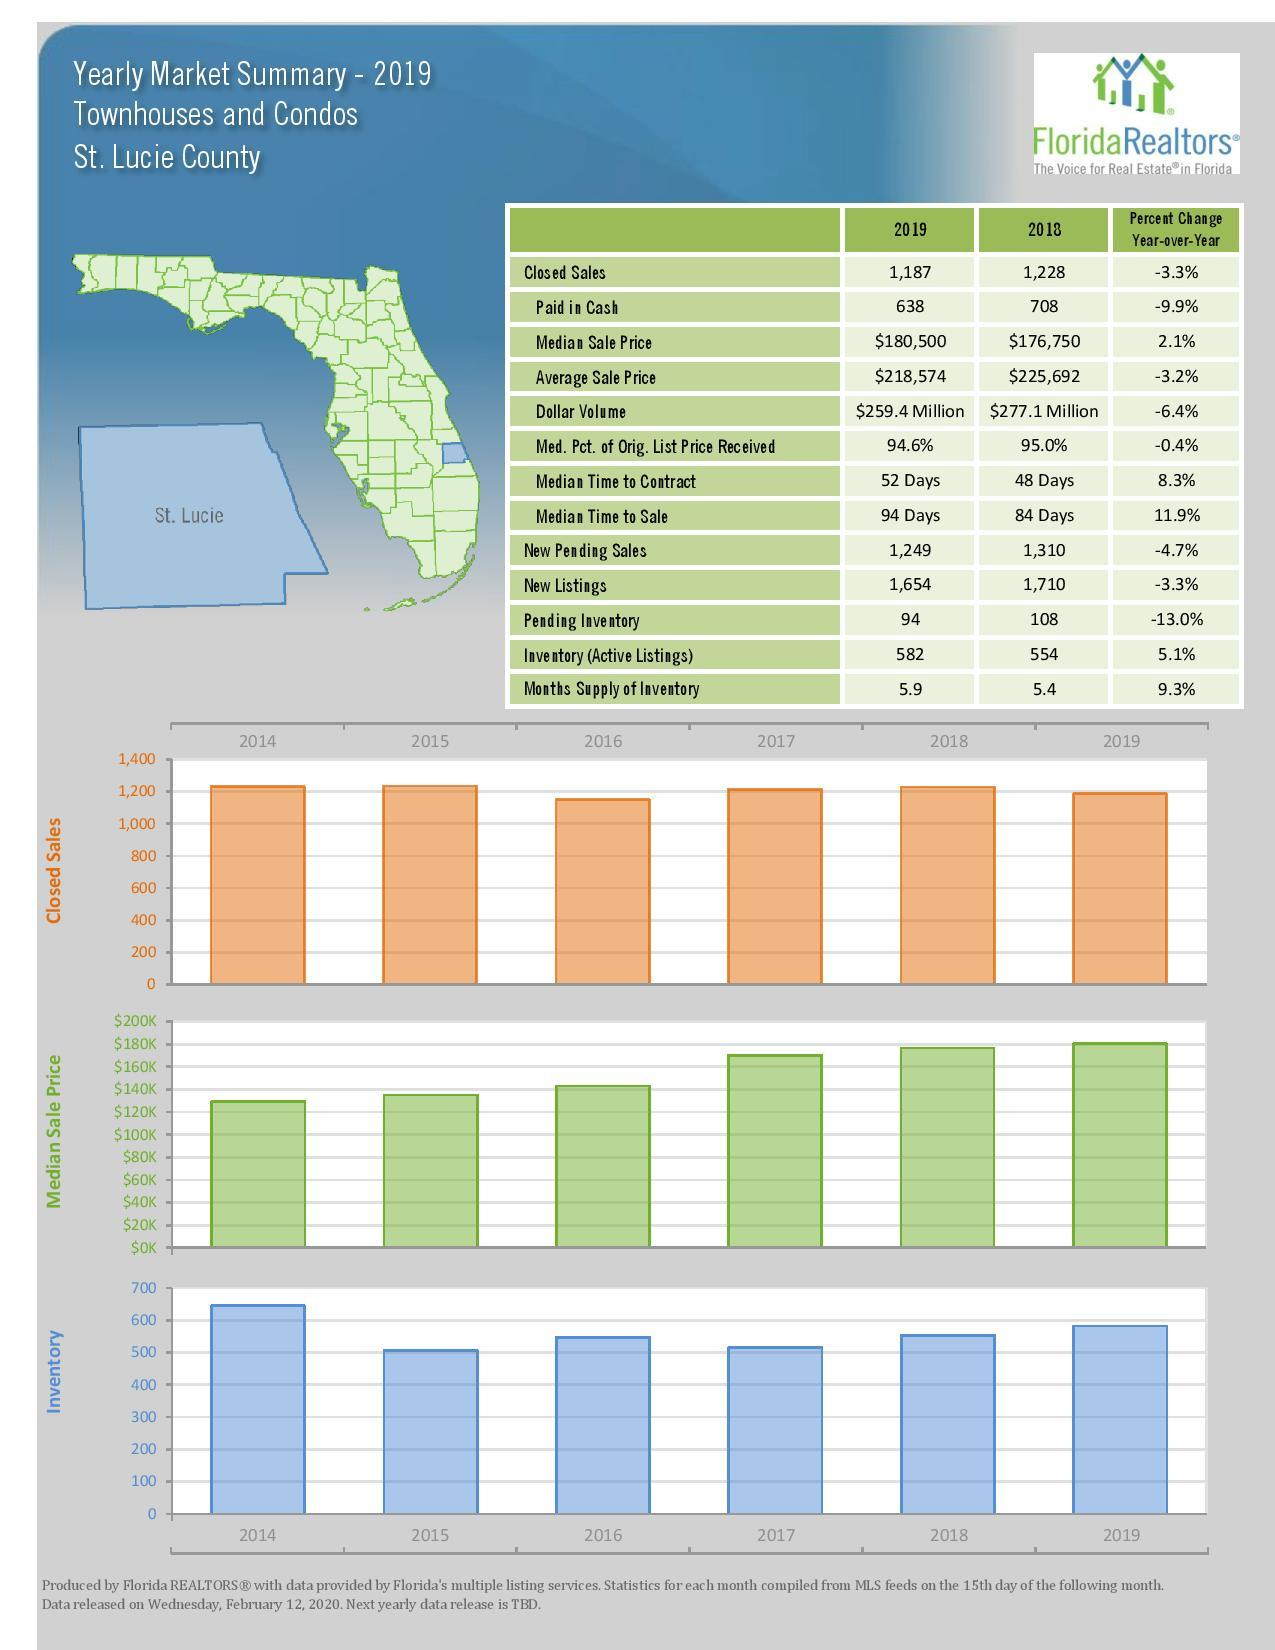 2019 Annual Local Market Update, St. Lucie, FL (Florida Realtors)